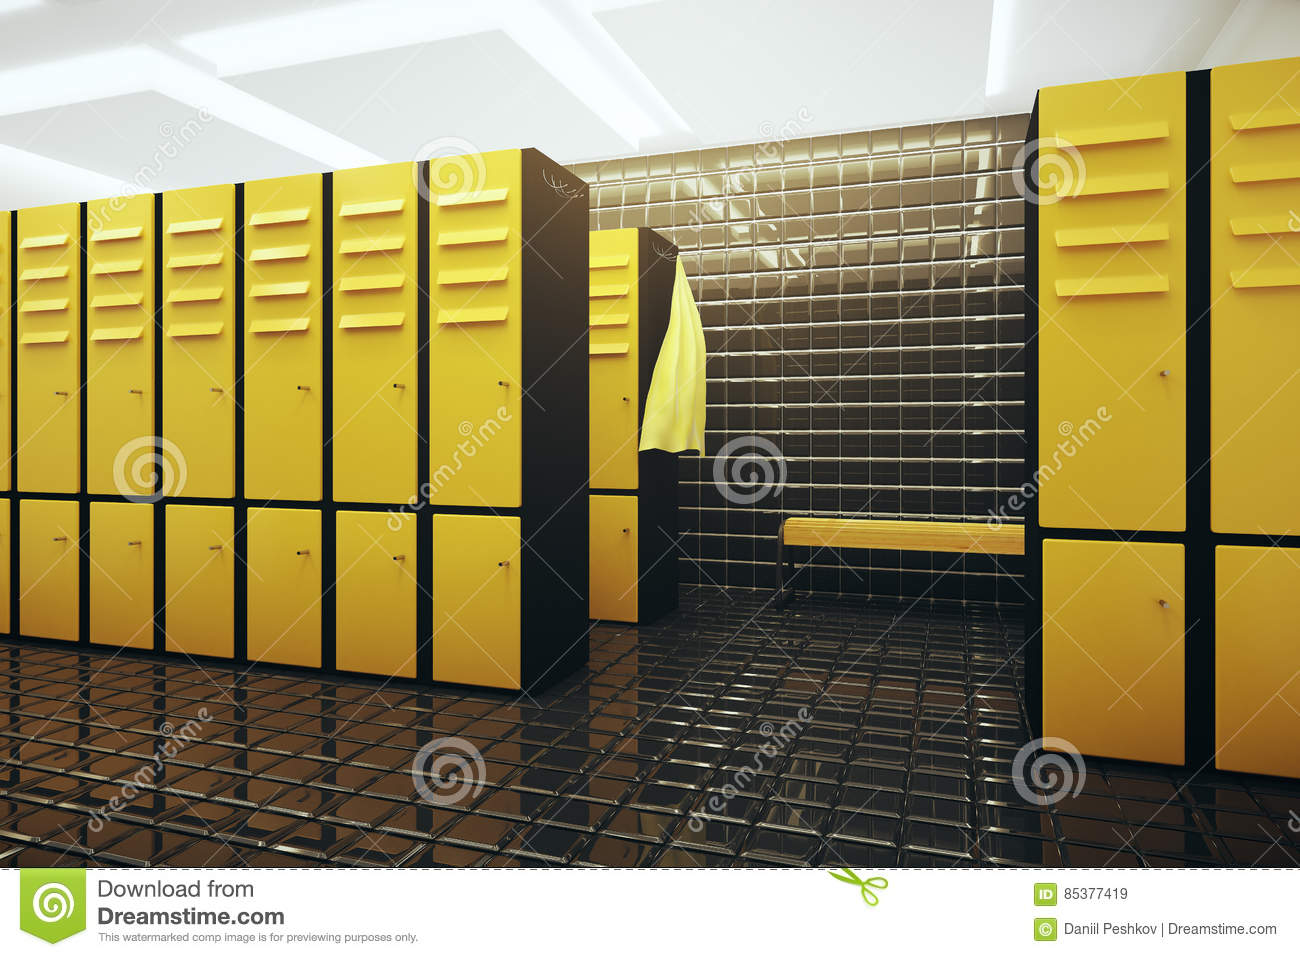 Changing room stock illustration  Illustration of indoors - 85377419